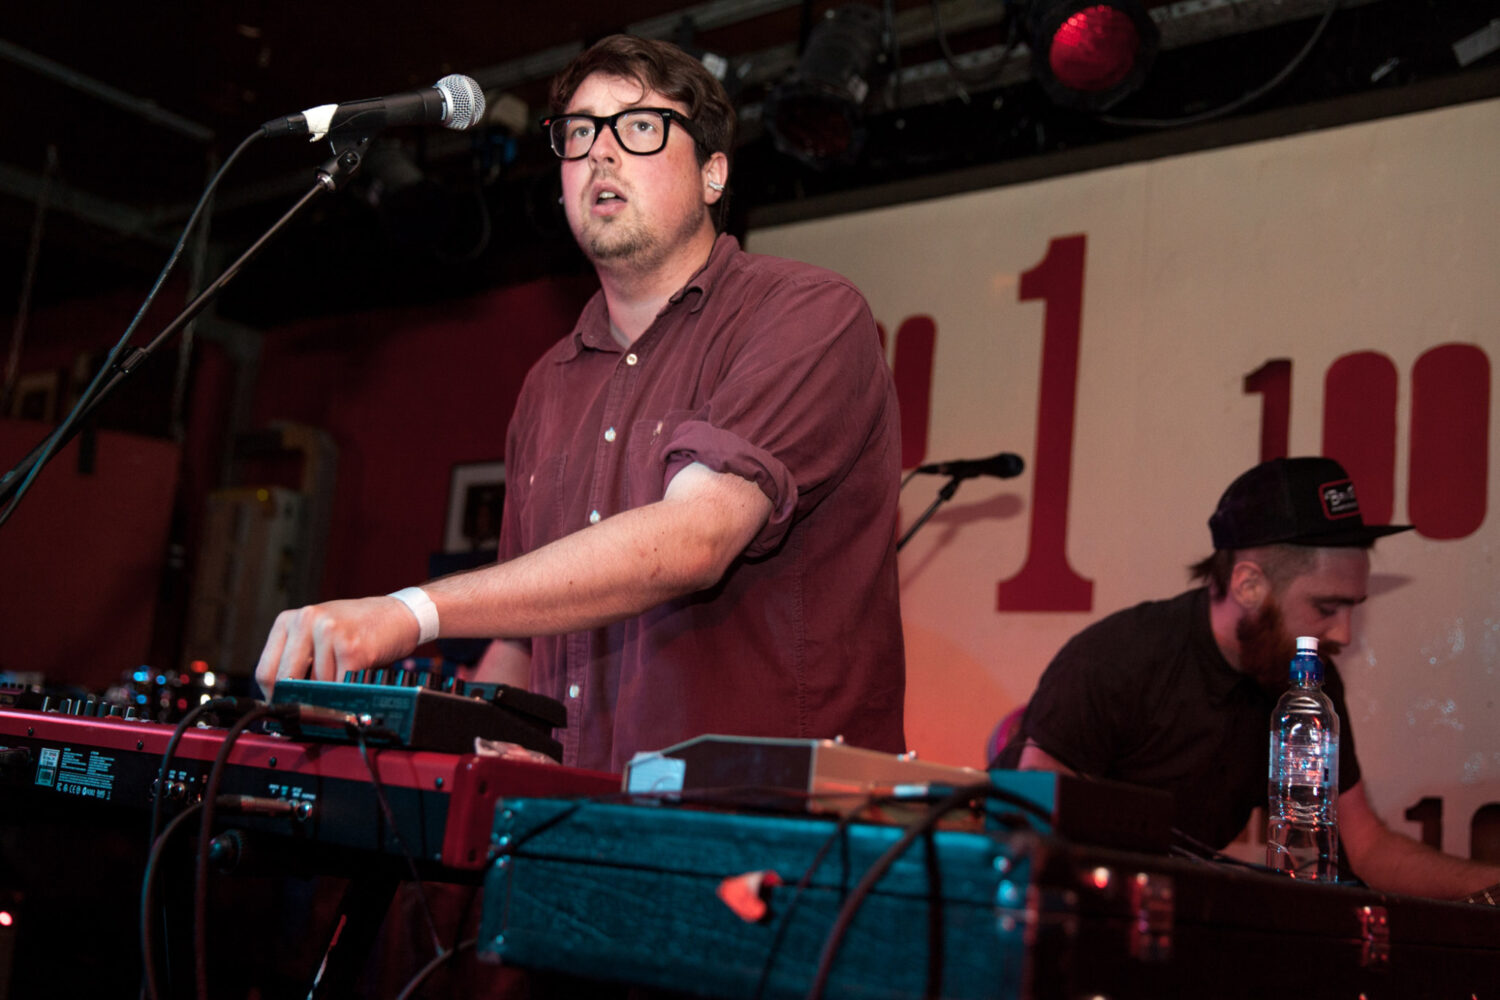 MJ Hookworms shares new Family Scraps song 'Ourselves'